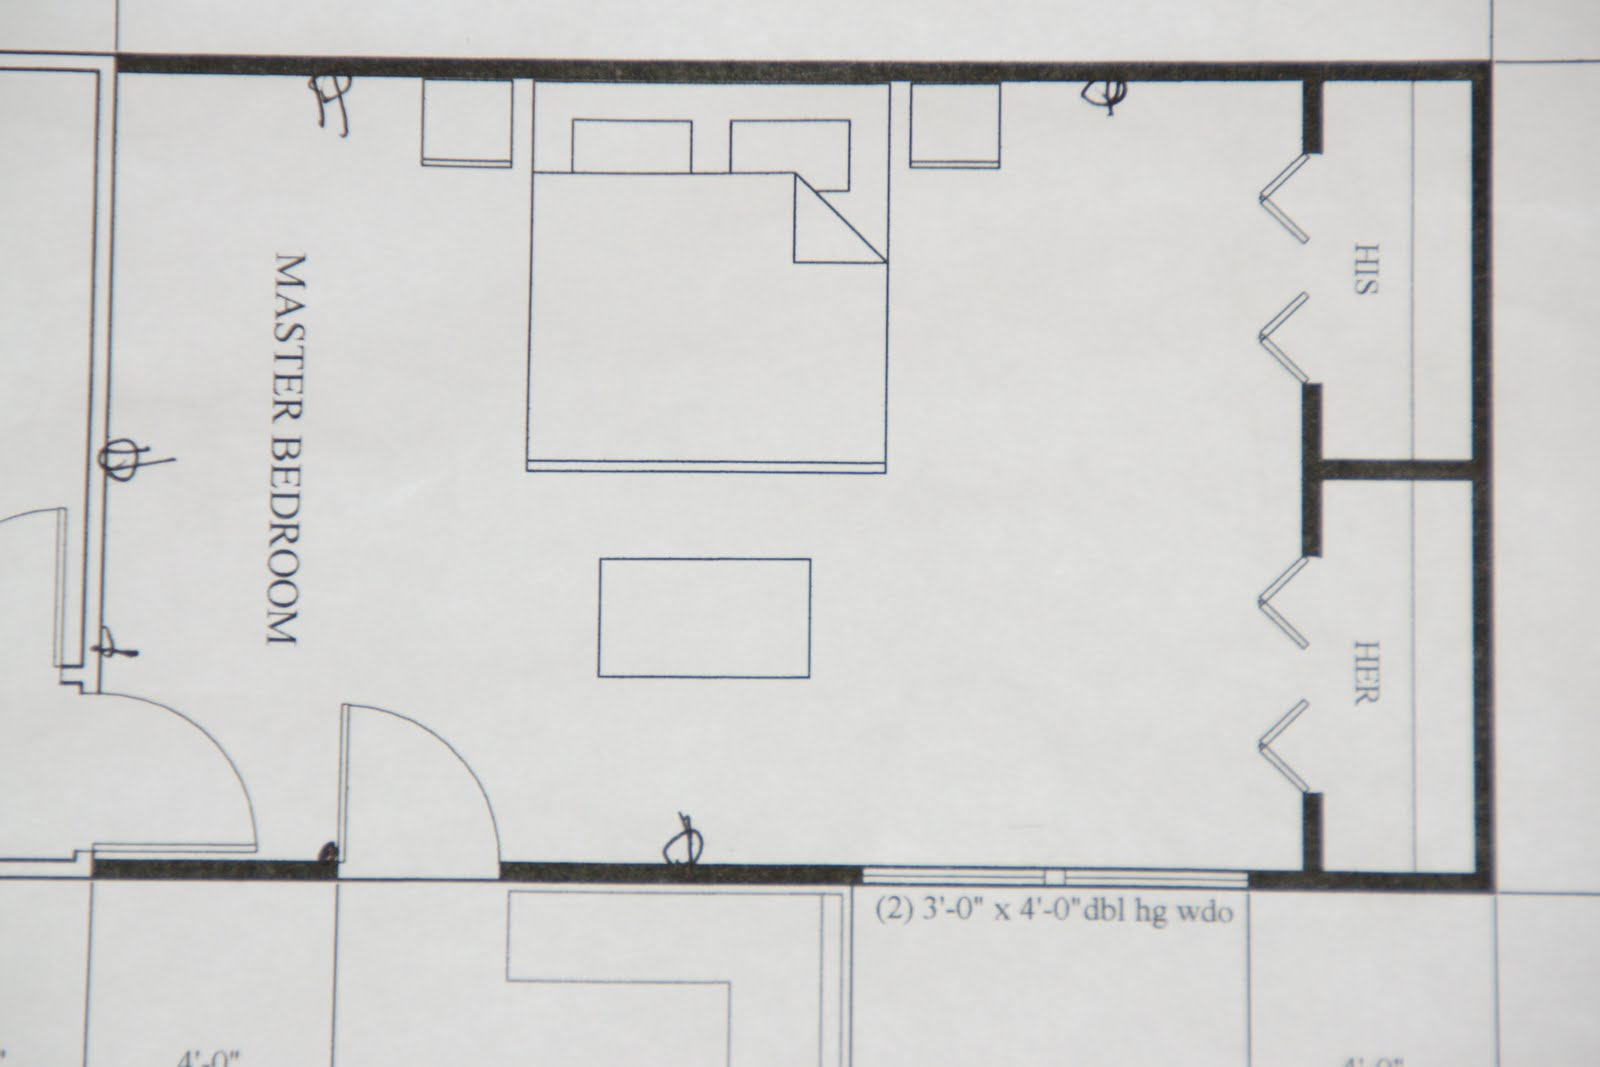 What 39 s new with the serranos master bedroom addition plans for Room addition plans free